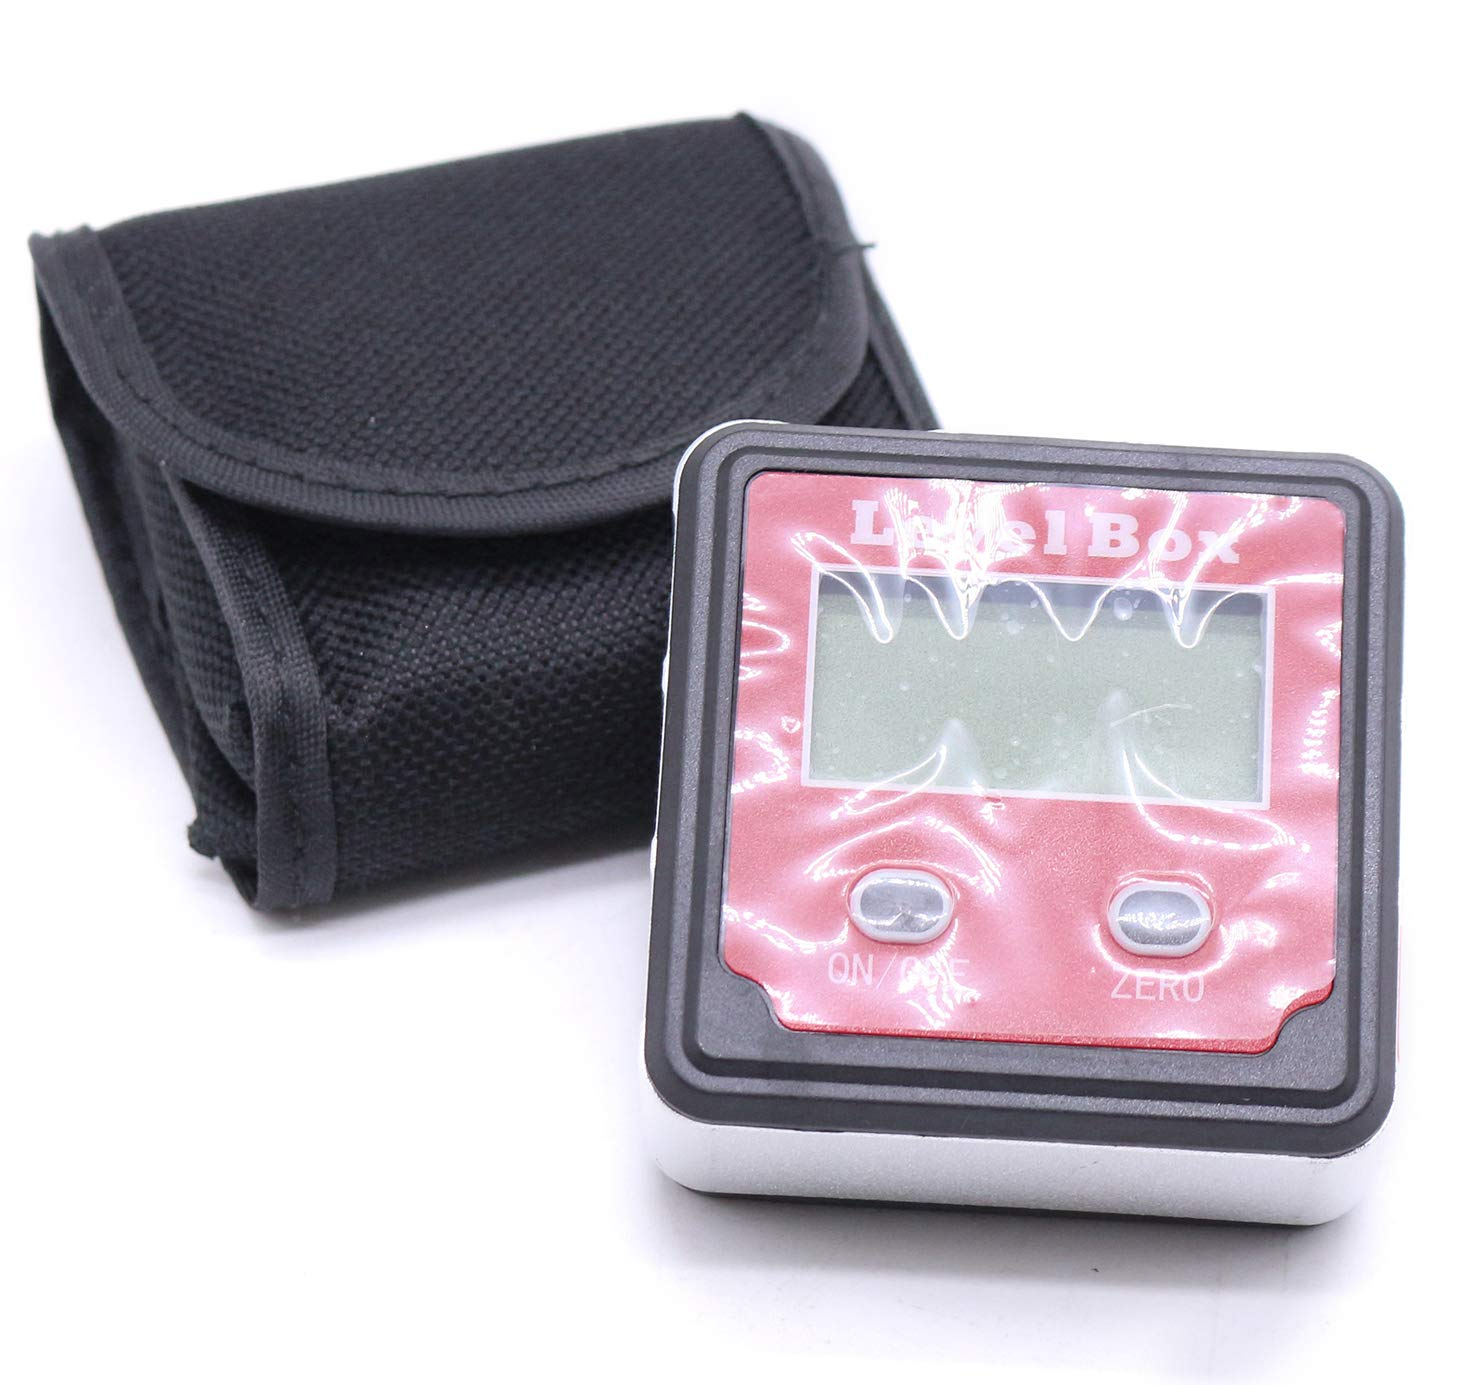 ZGQA-GQA Dgital Meter High Accuracy High Resistance Meter AT682 Digital Insulation Resistance Tester Can Direct Readout of Resistance and Current